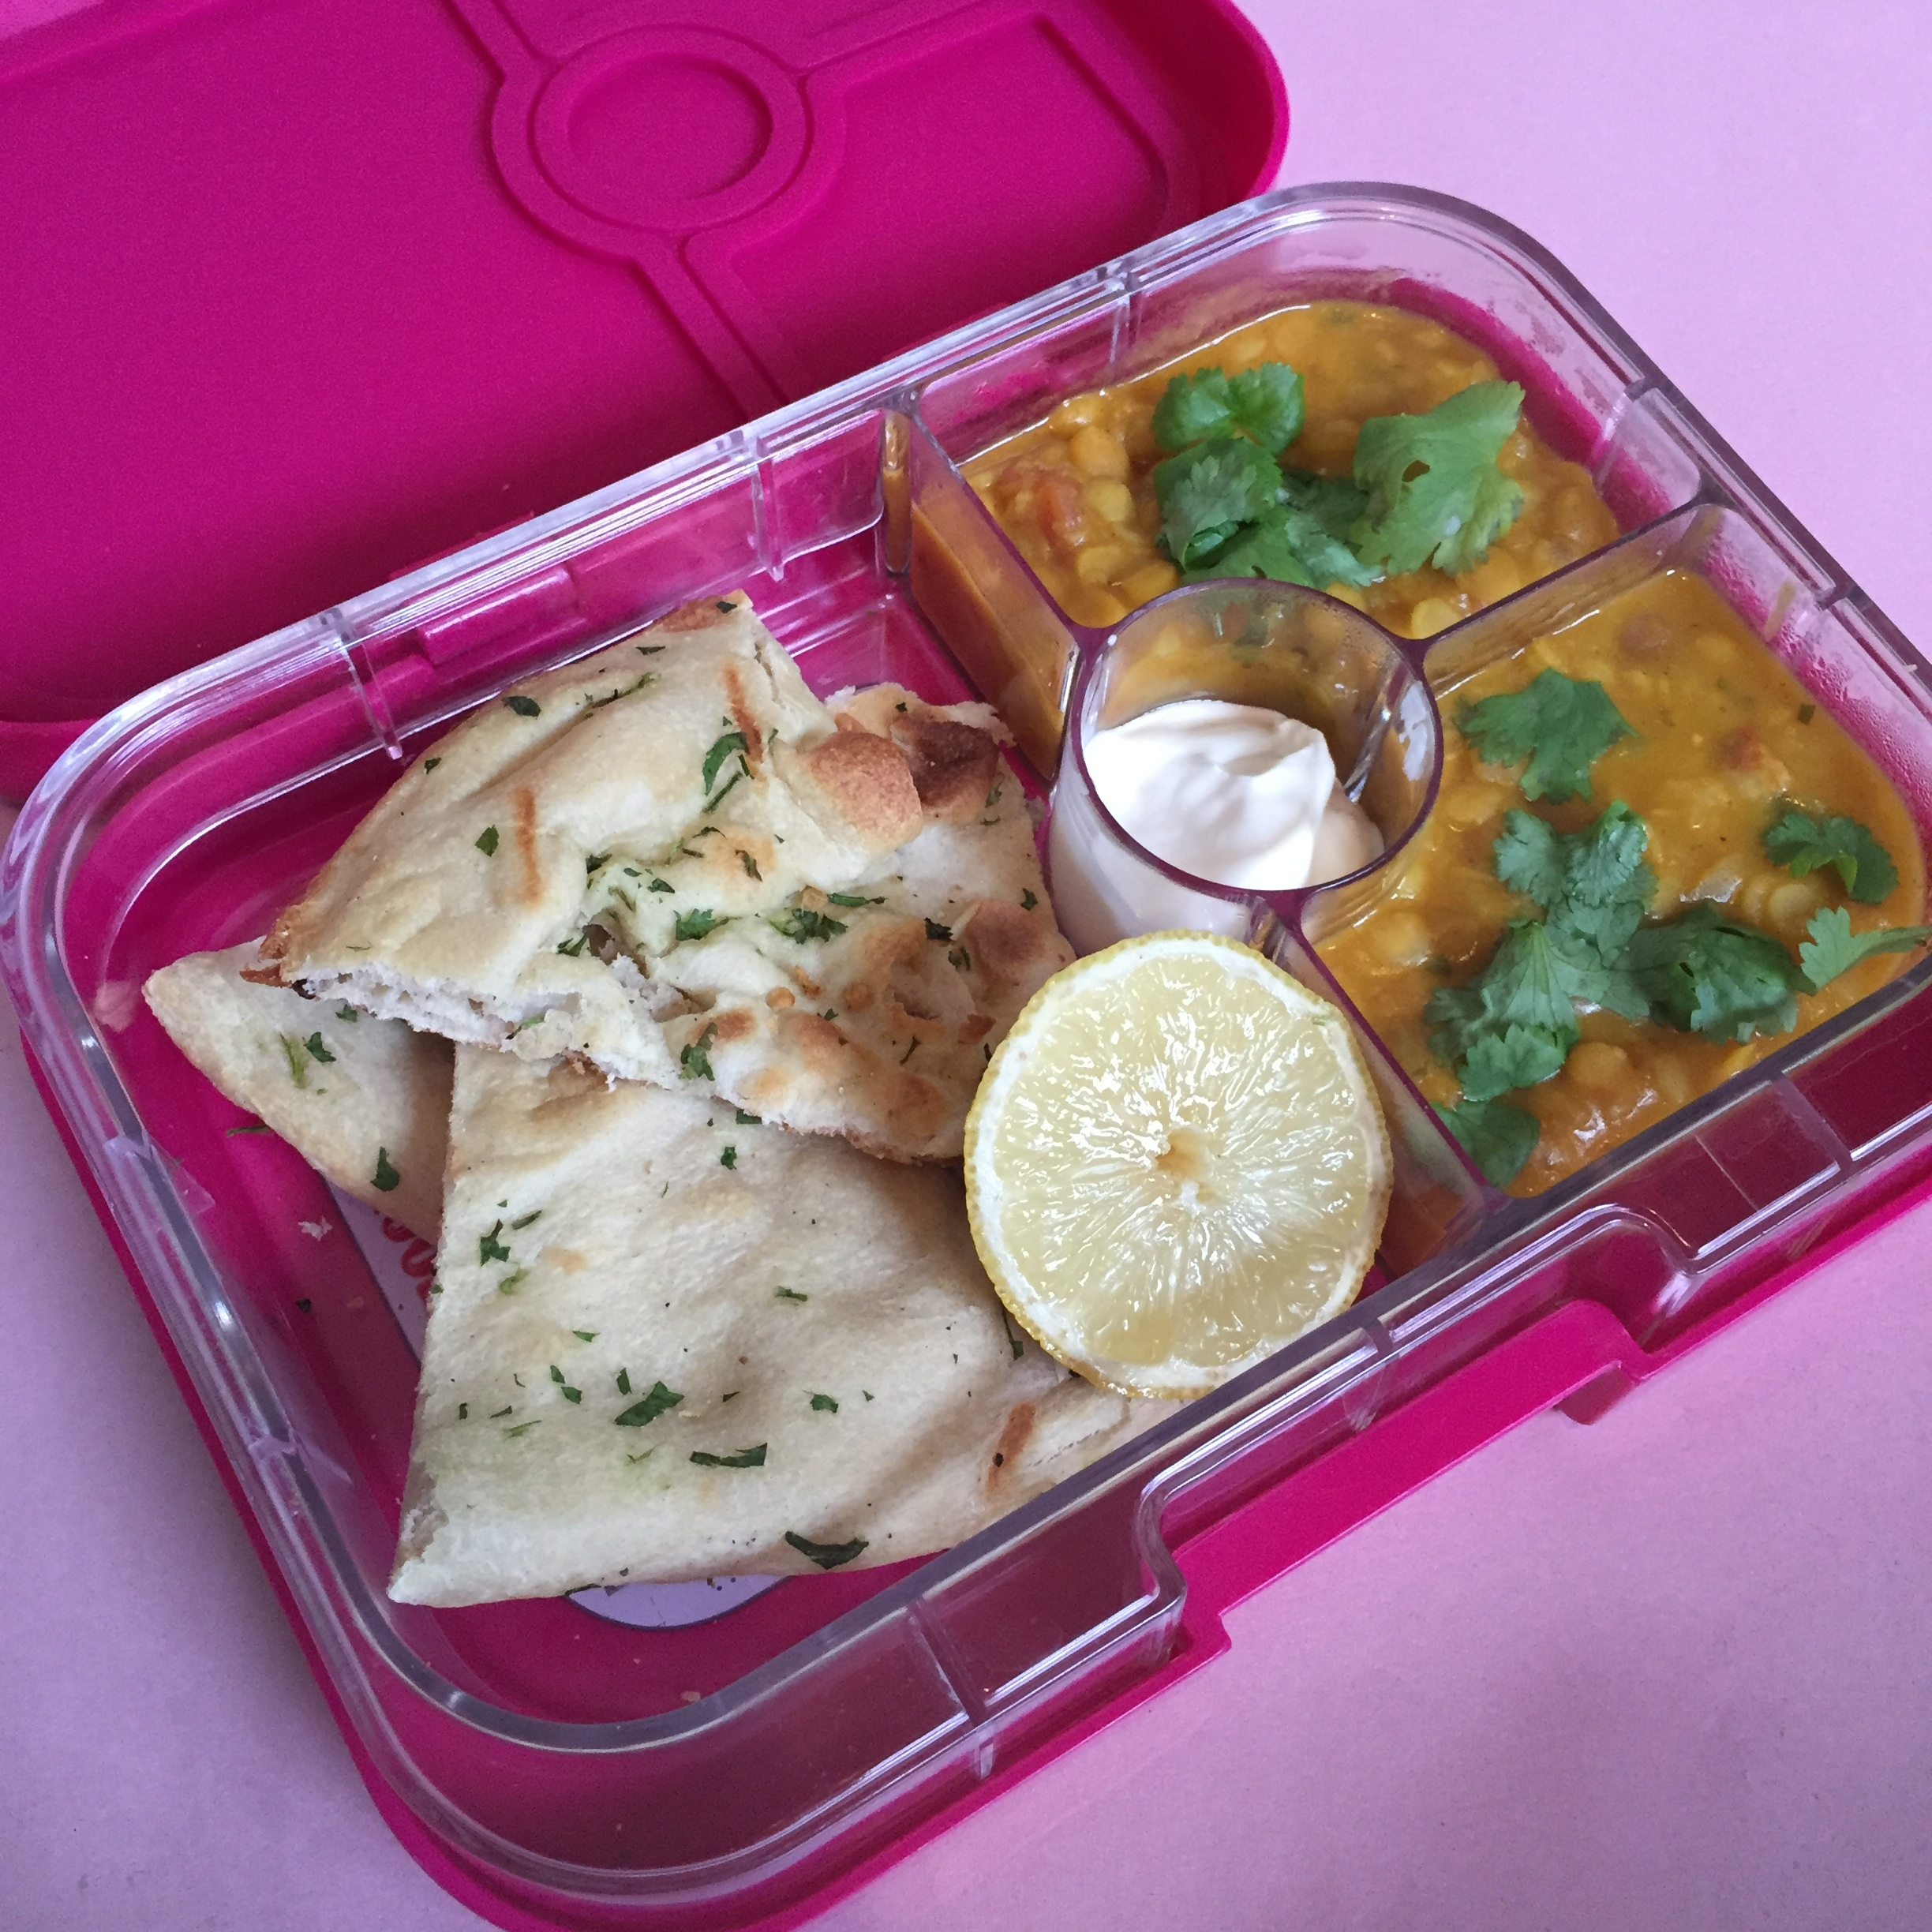 The Yumbox Panino Indiand Curry Leftovers